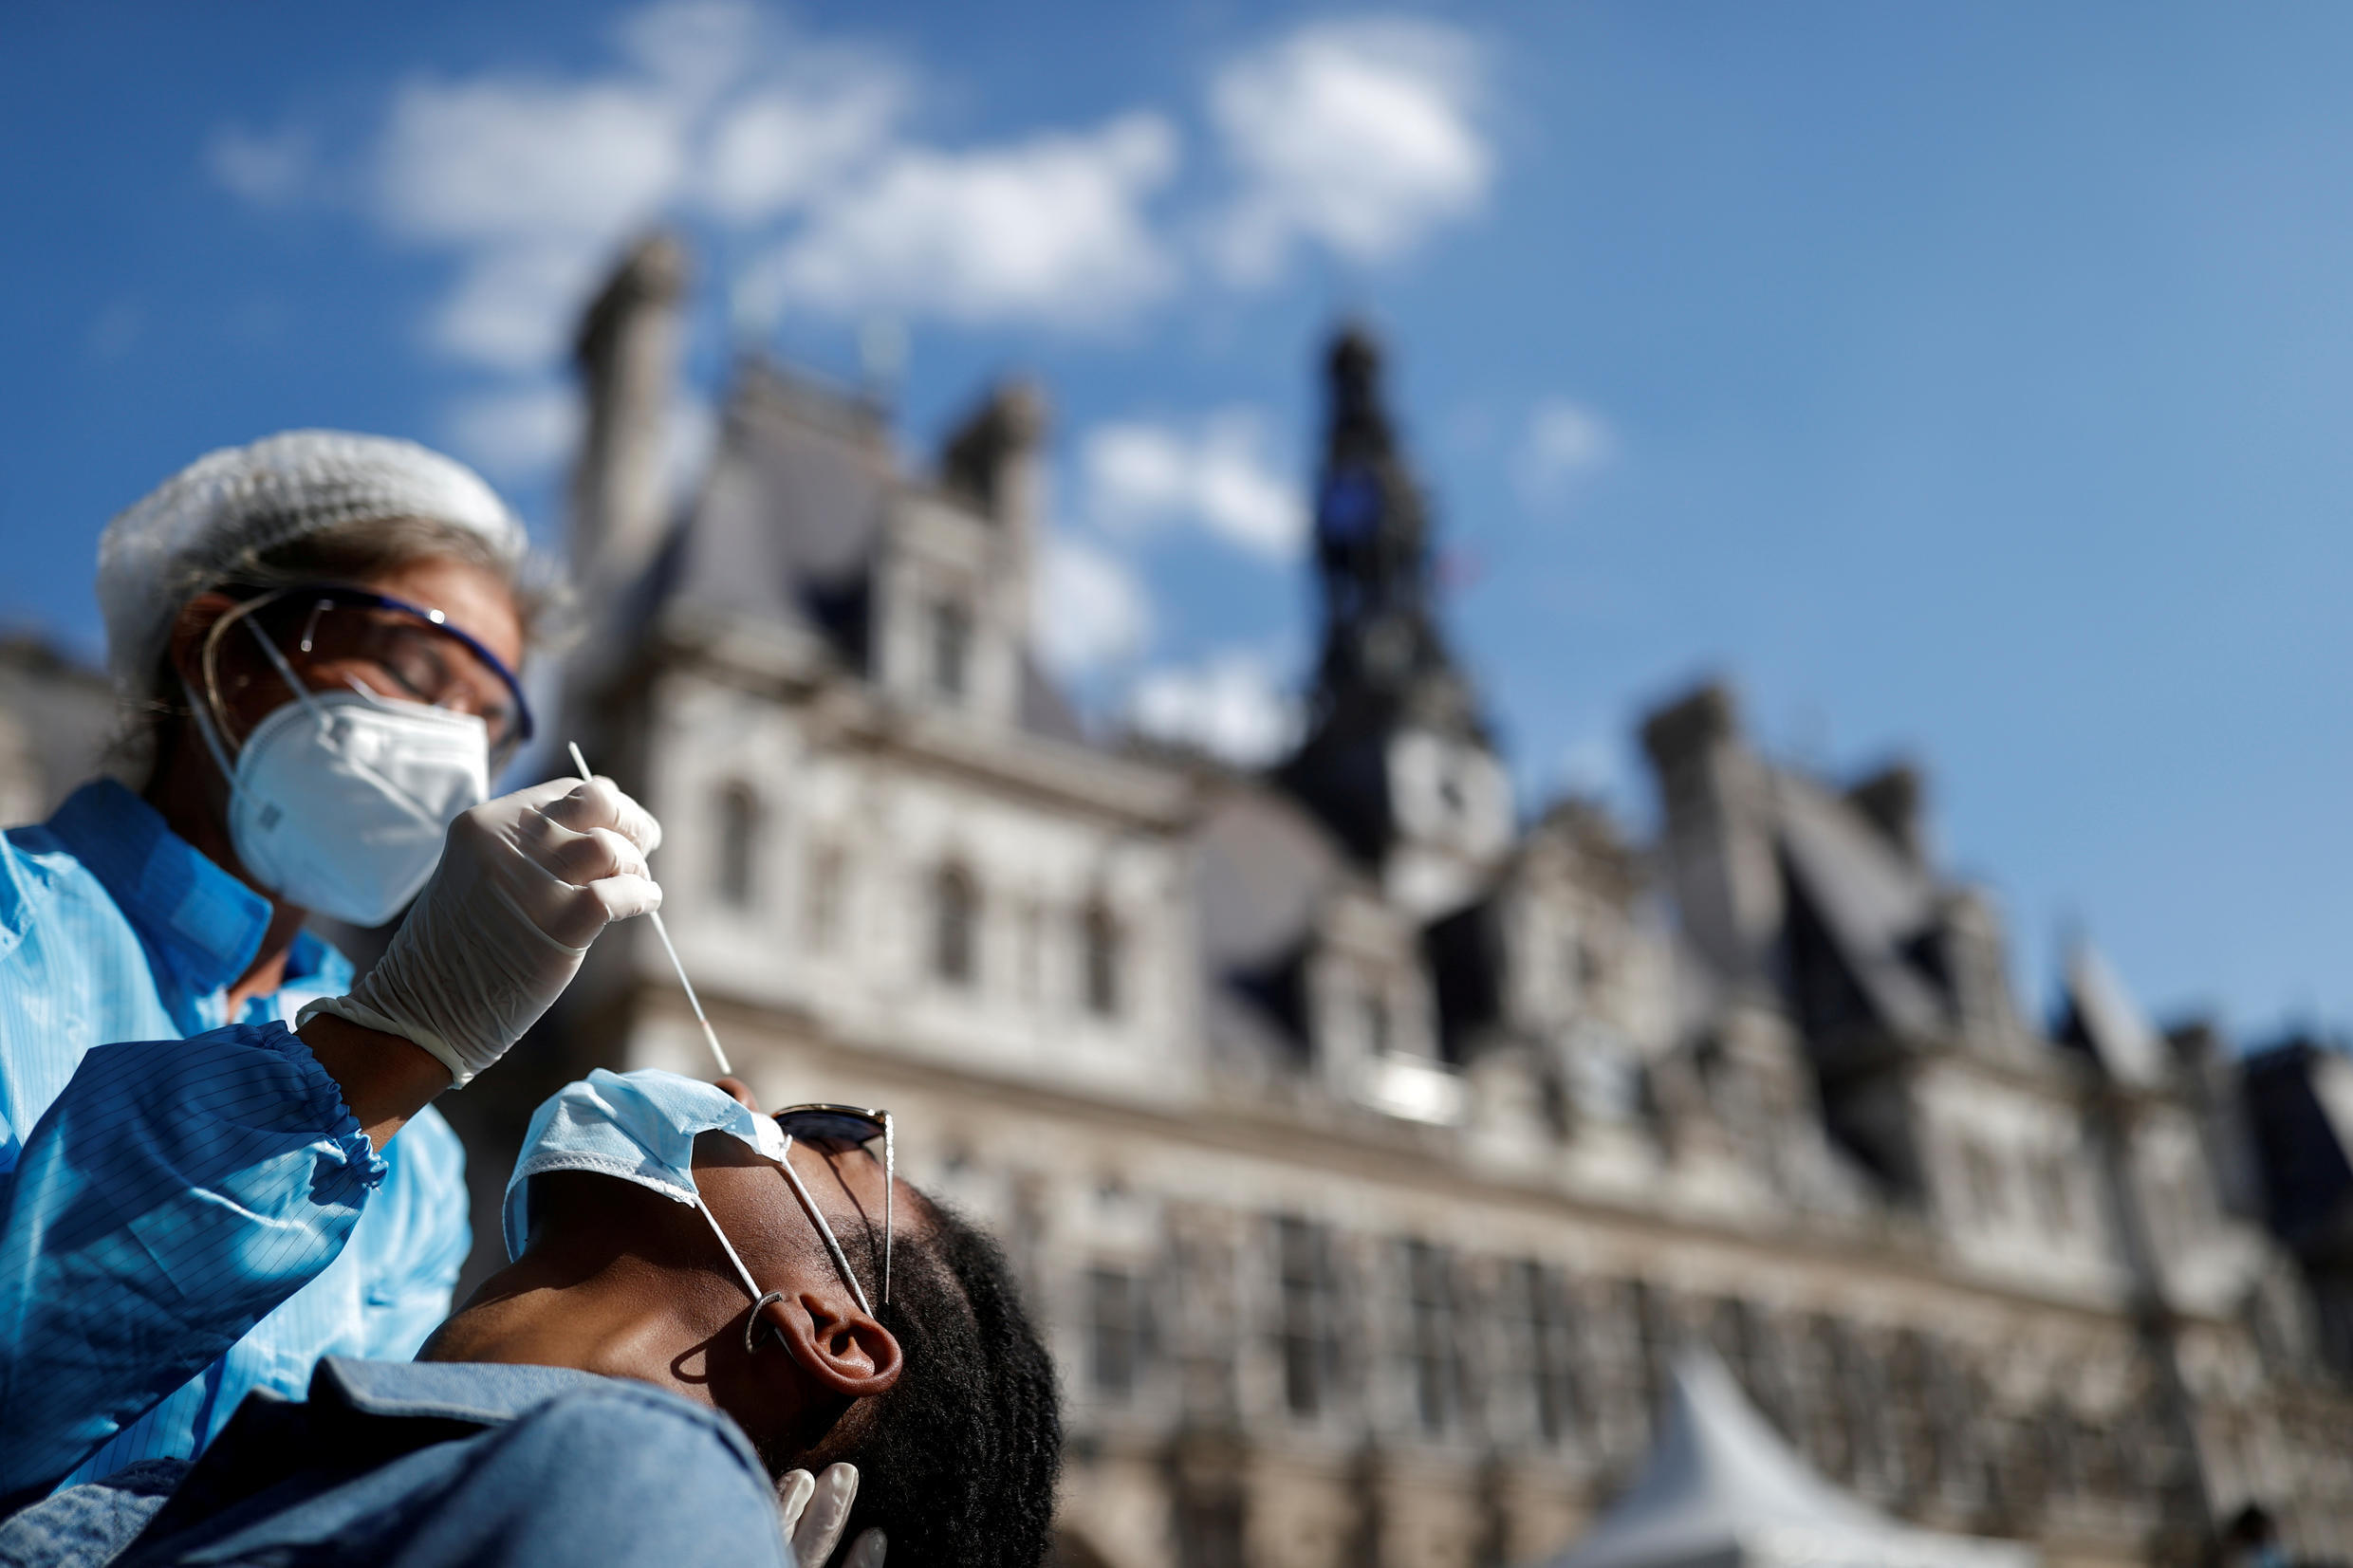 A health worker administers a nasal swab at a testing site in front of Paris city hall on September 2, 2020.